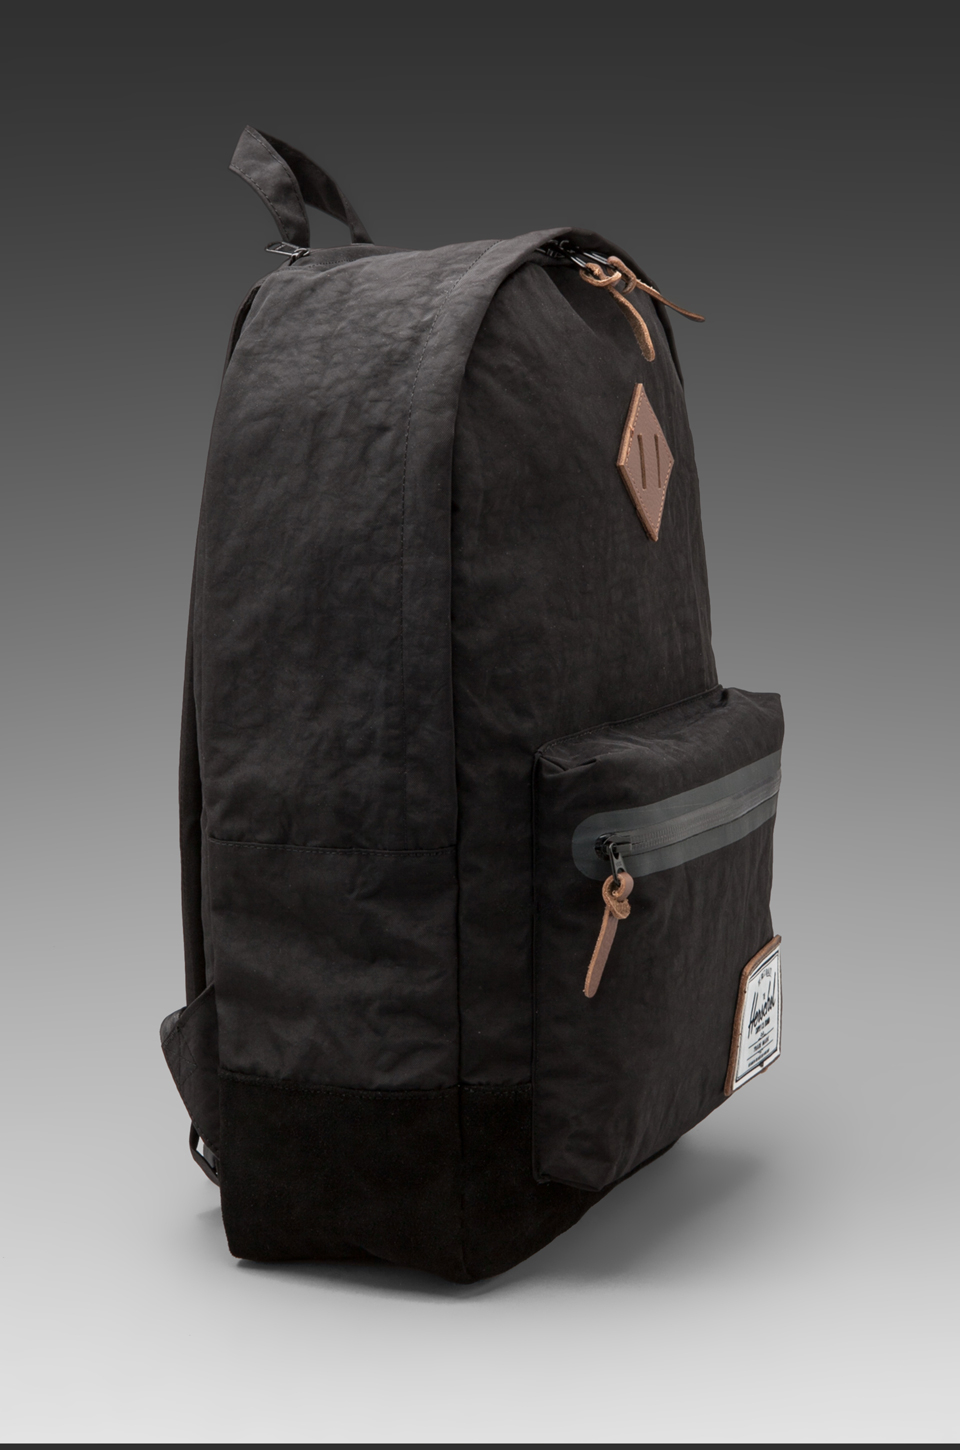 ab612c8e22 Lyst - Herschel Supply Co. Bad Hills Collection Heritage Plus ...